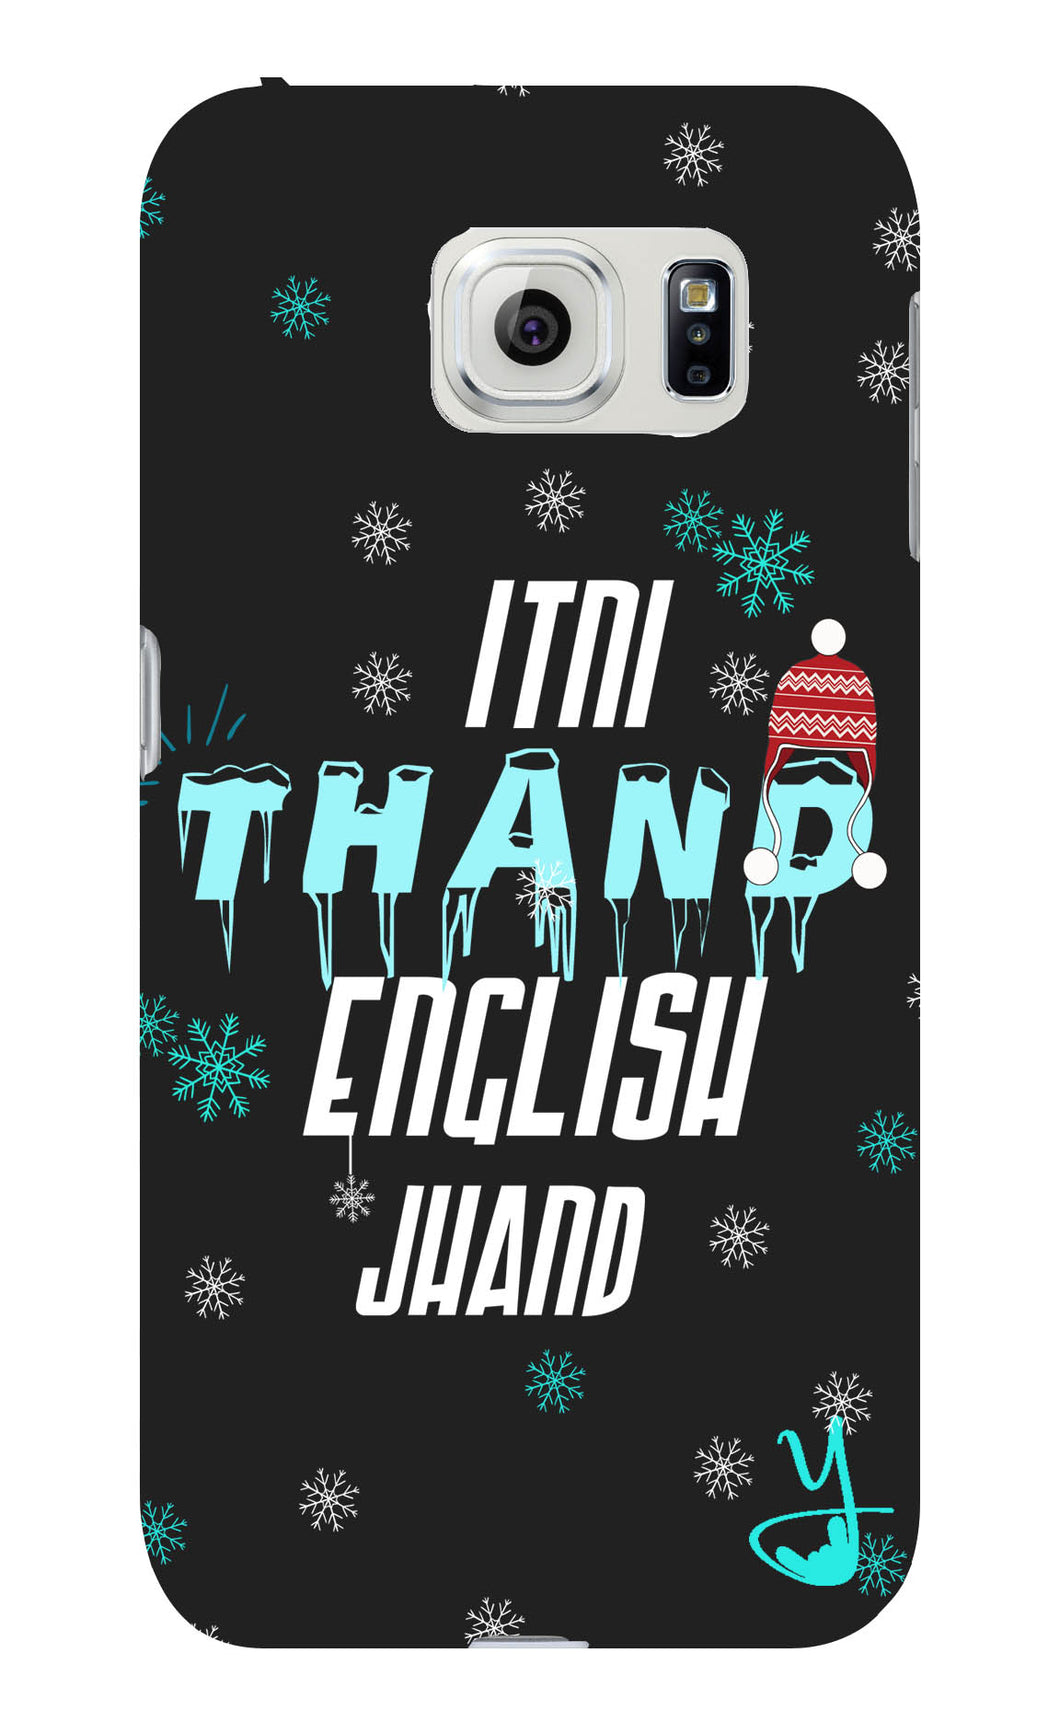 Itni Thand edition for Samsung Galaxy S6 edge